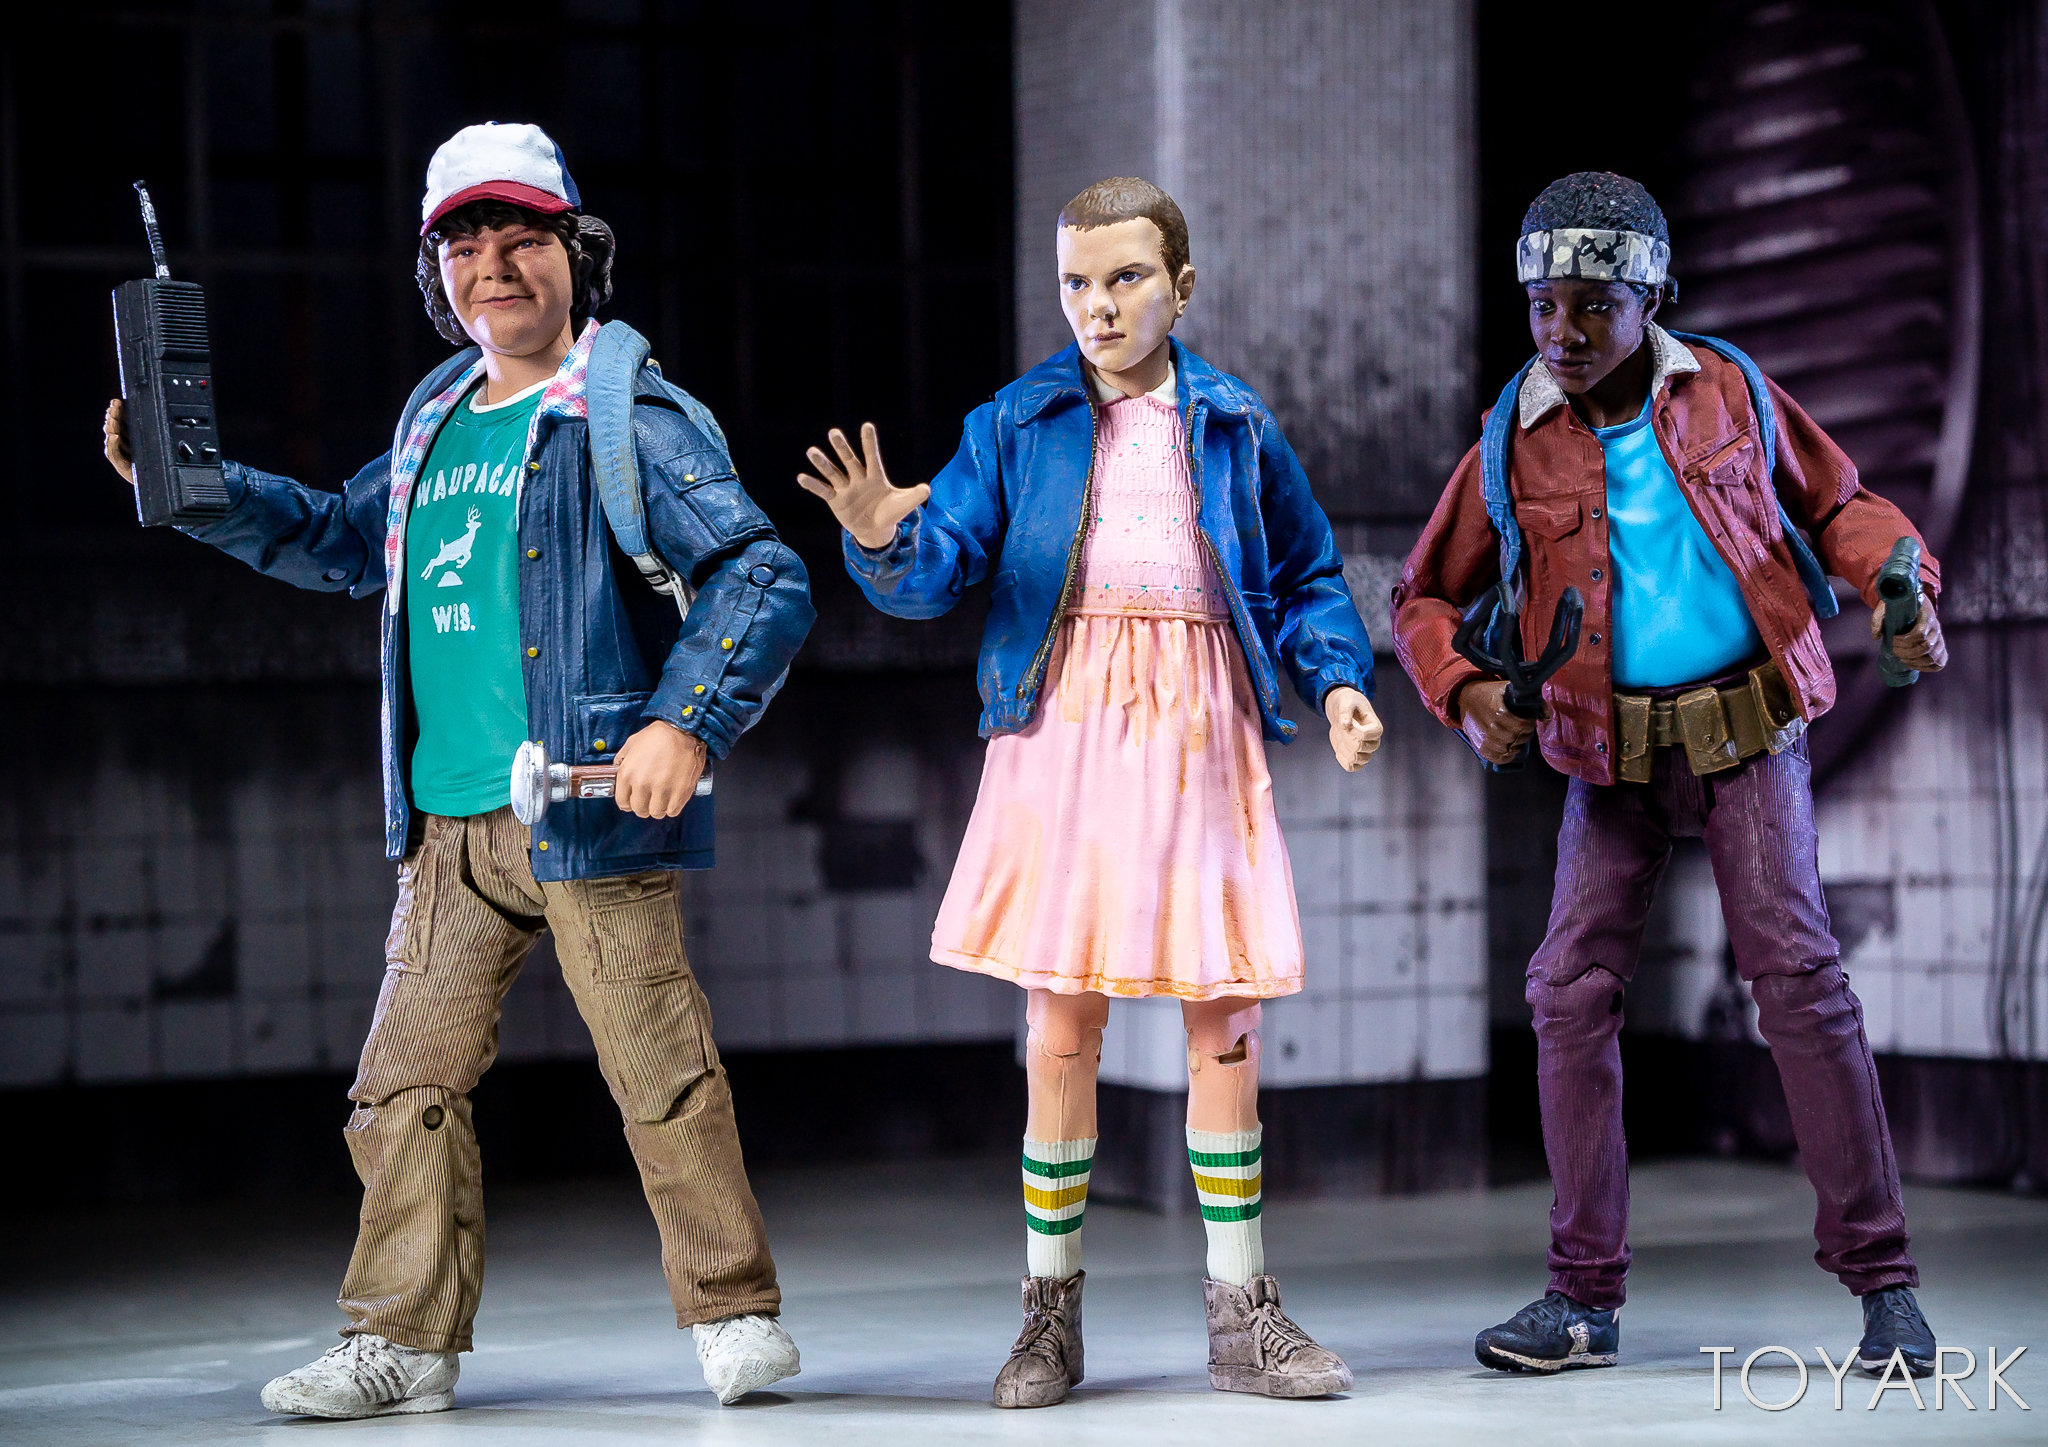 https://news.toyark.com/wp-content/uploads/sites/4/2018/05/Stranger-Things-Figs-by-McFarlane-026.jpg